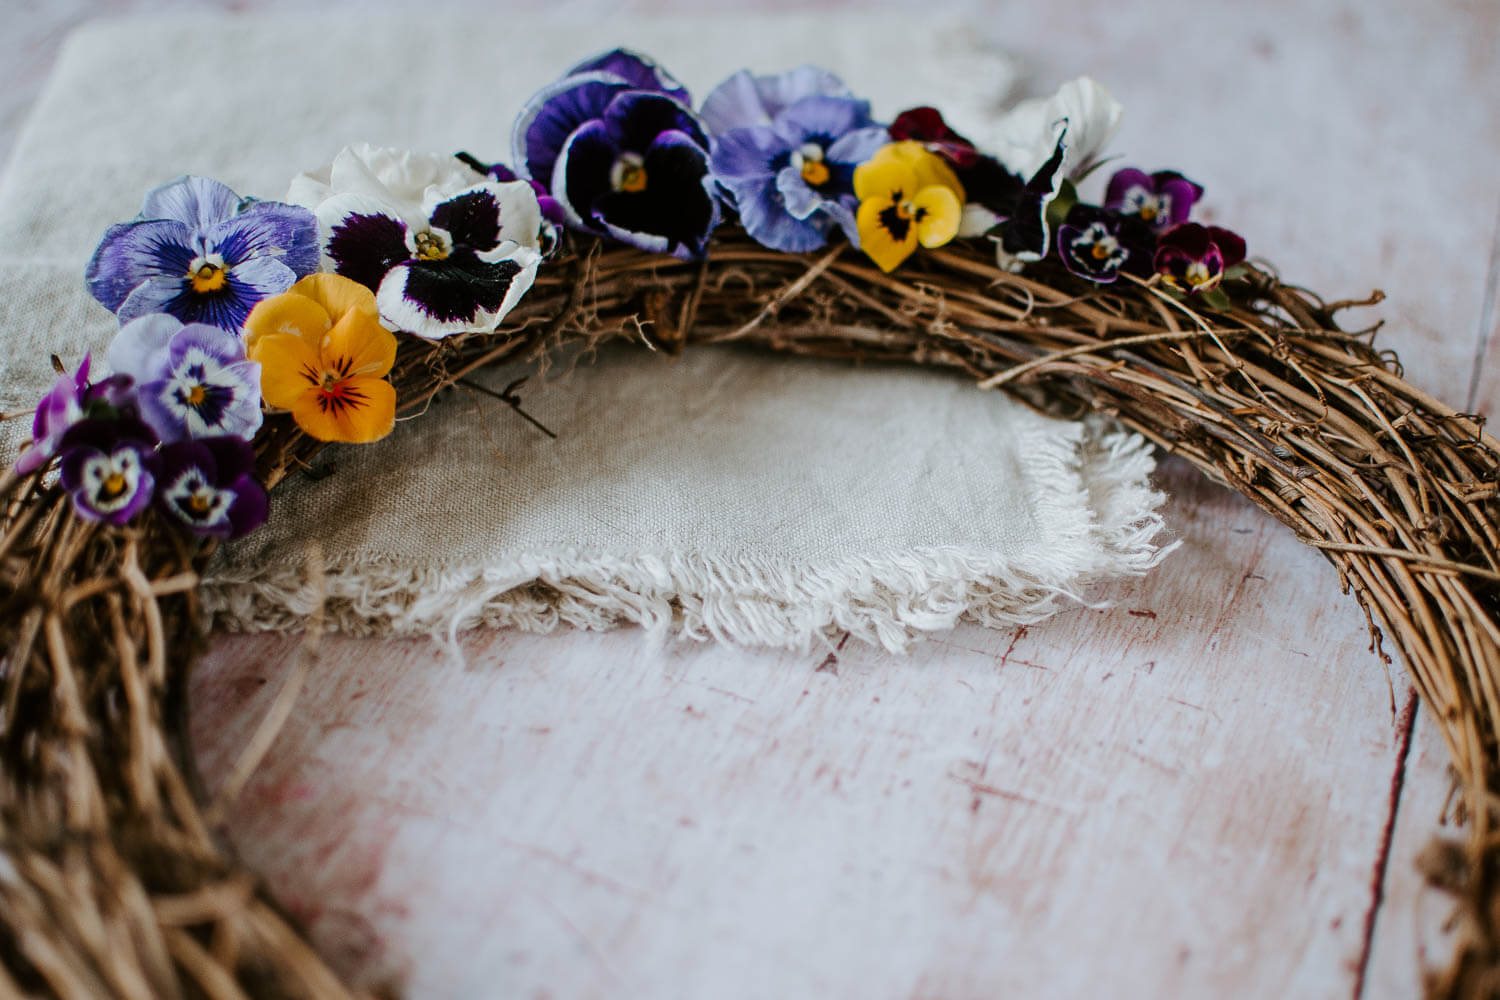 Pansies on a wooden wreath